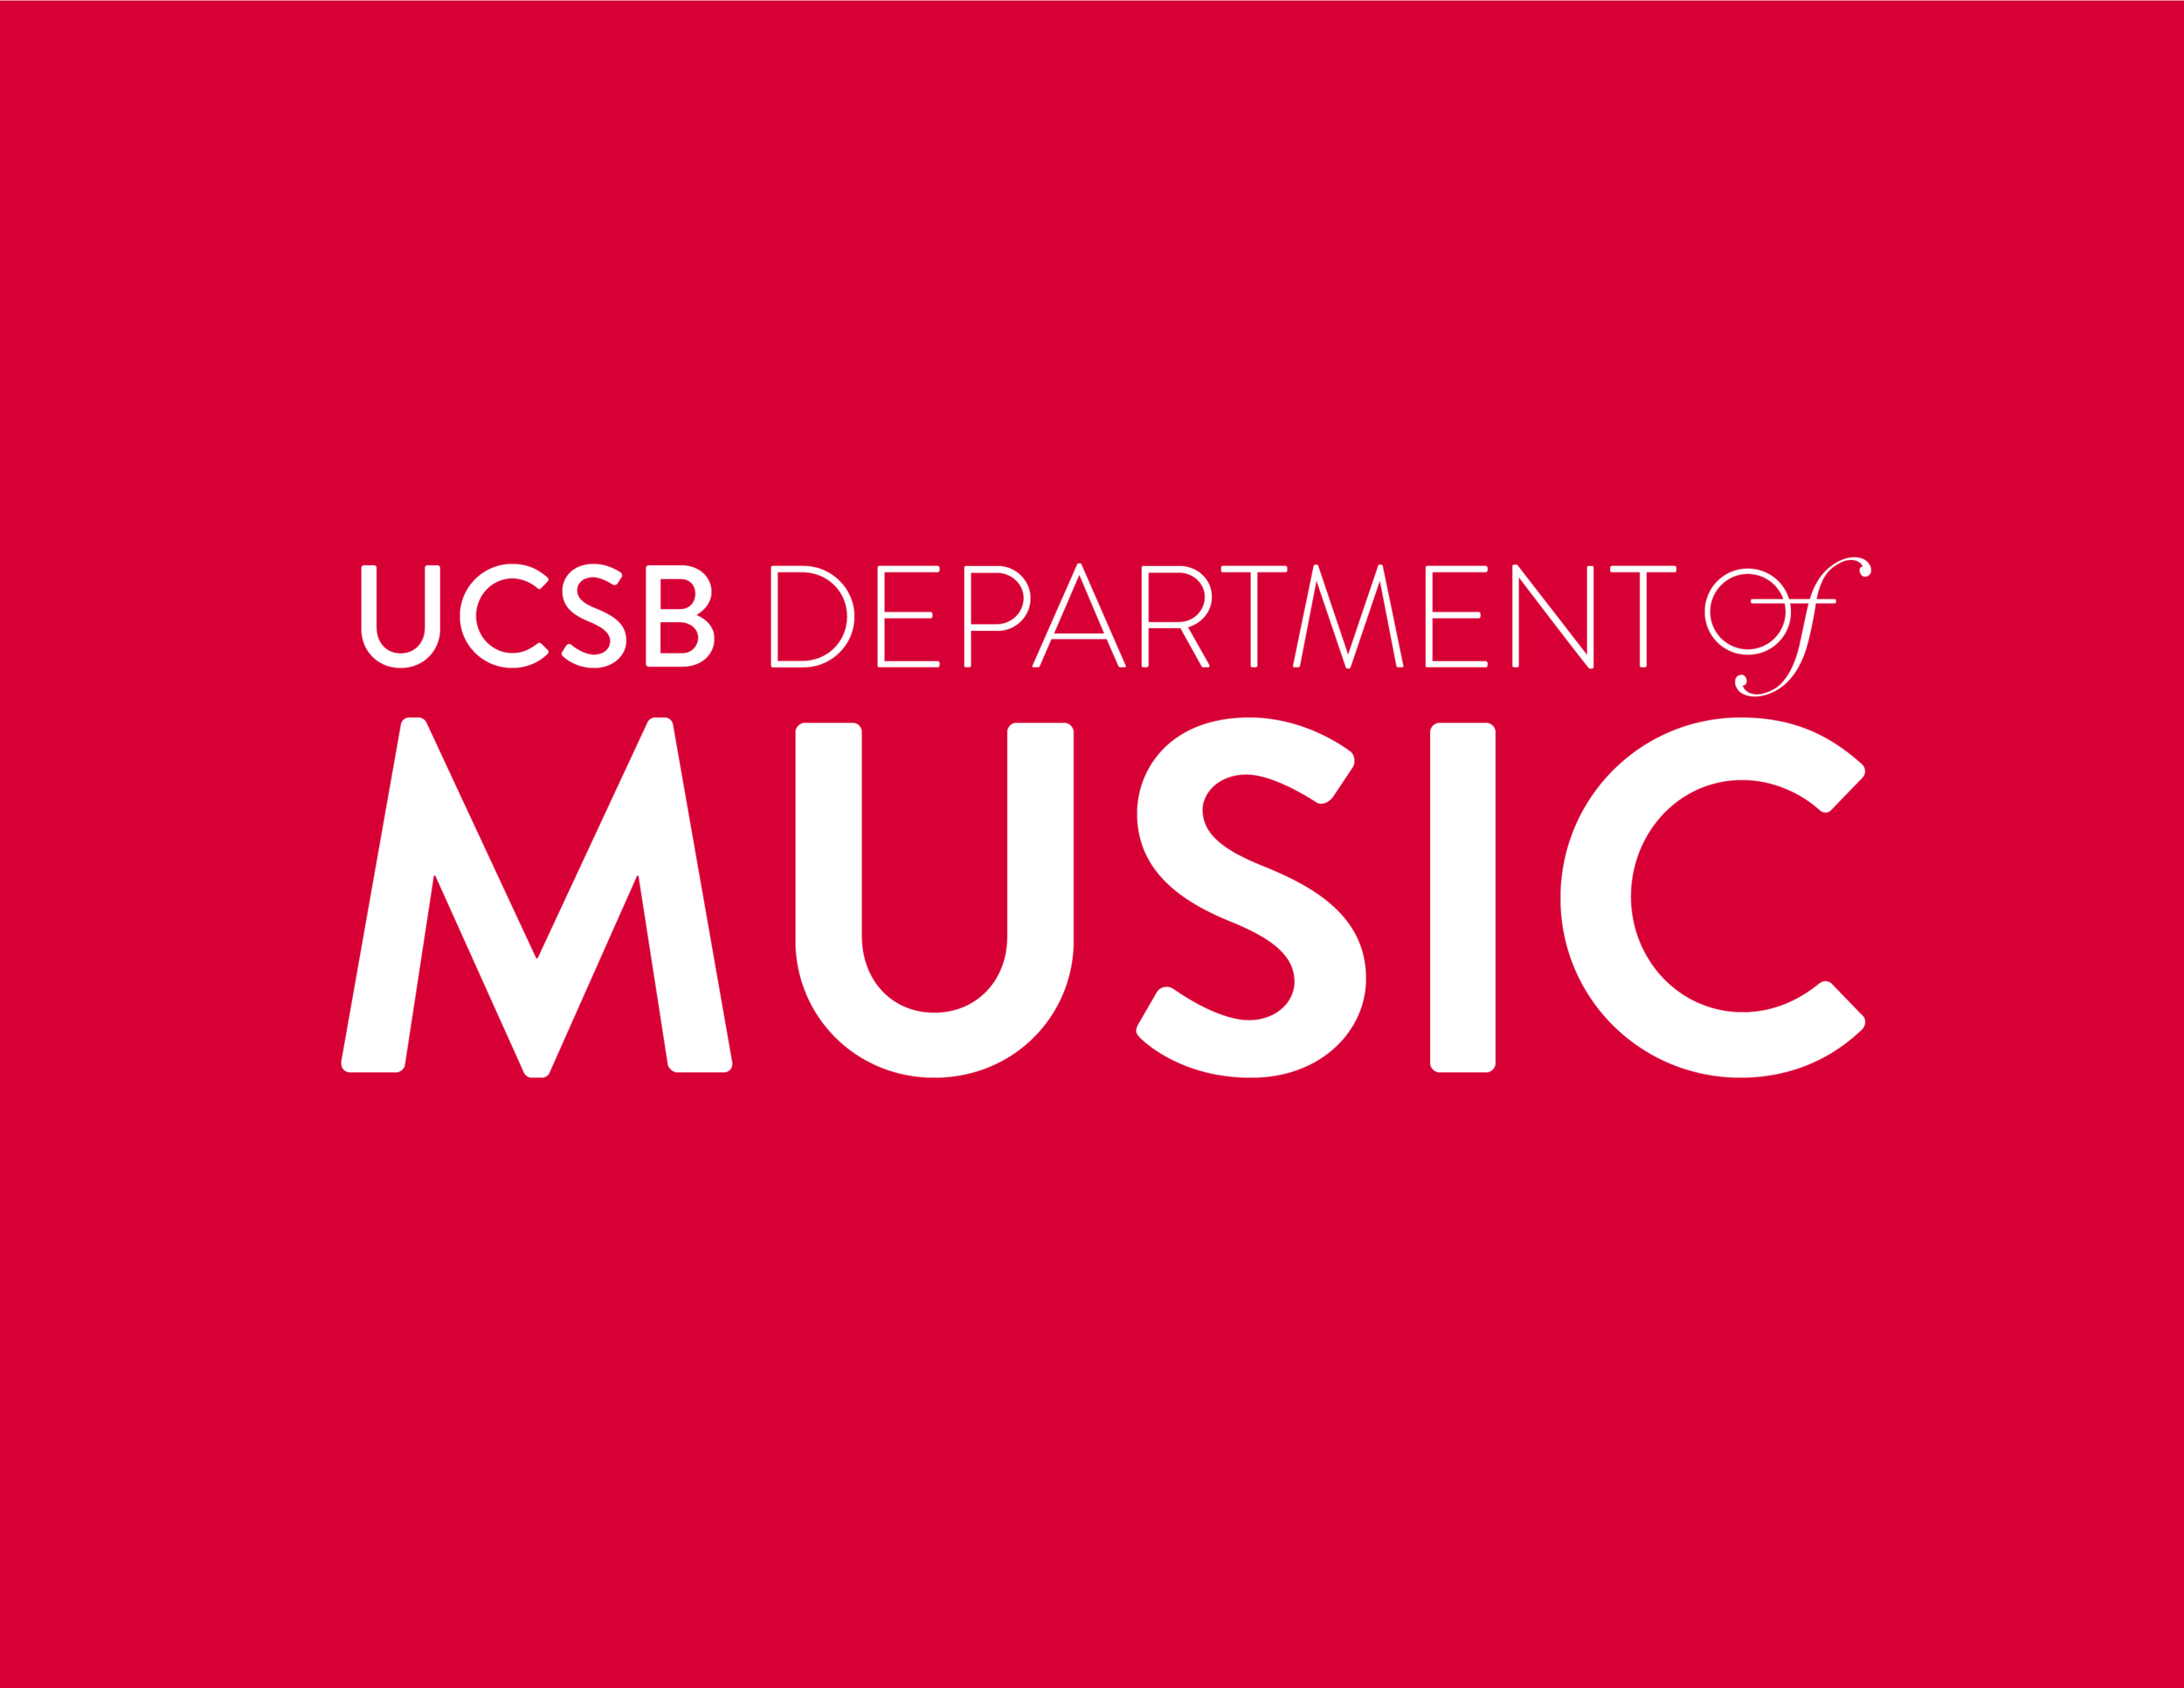 ucsb guidelines new logo and font use FINAL-08.png